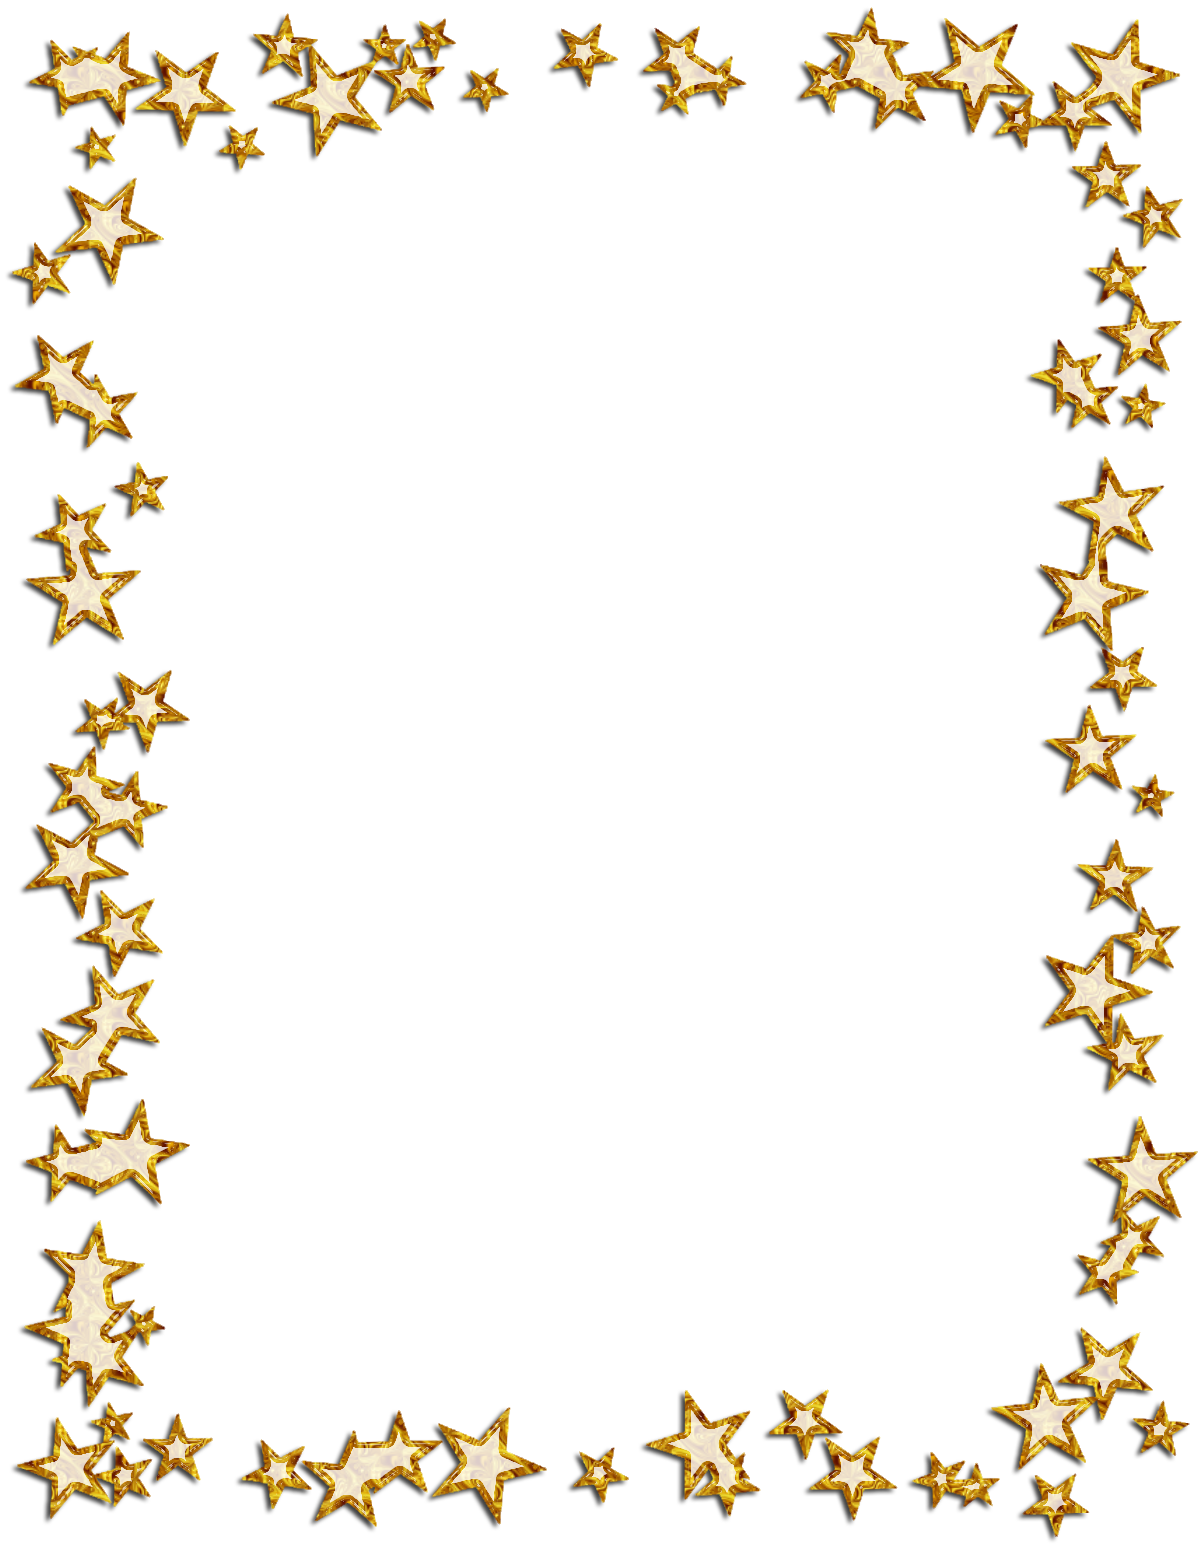 Gold star border clipart clipart black and white Borders and Frames Picture Frames Star Photography Clip art - gold ... clipart black and white